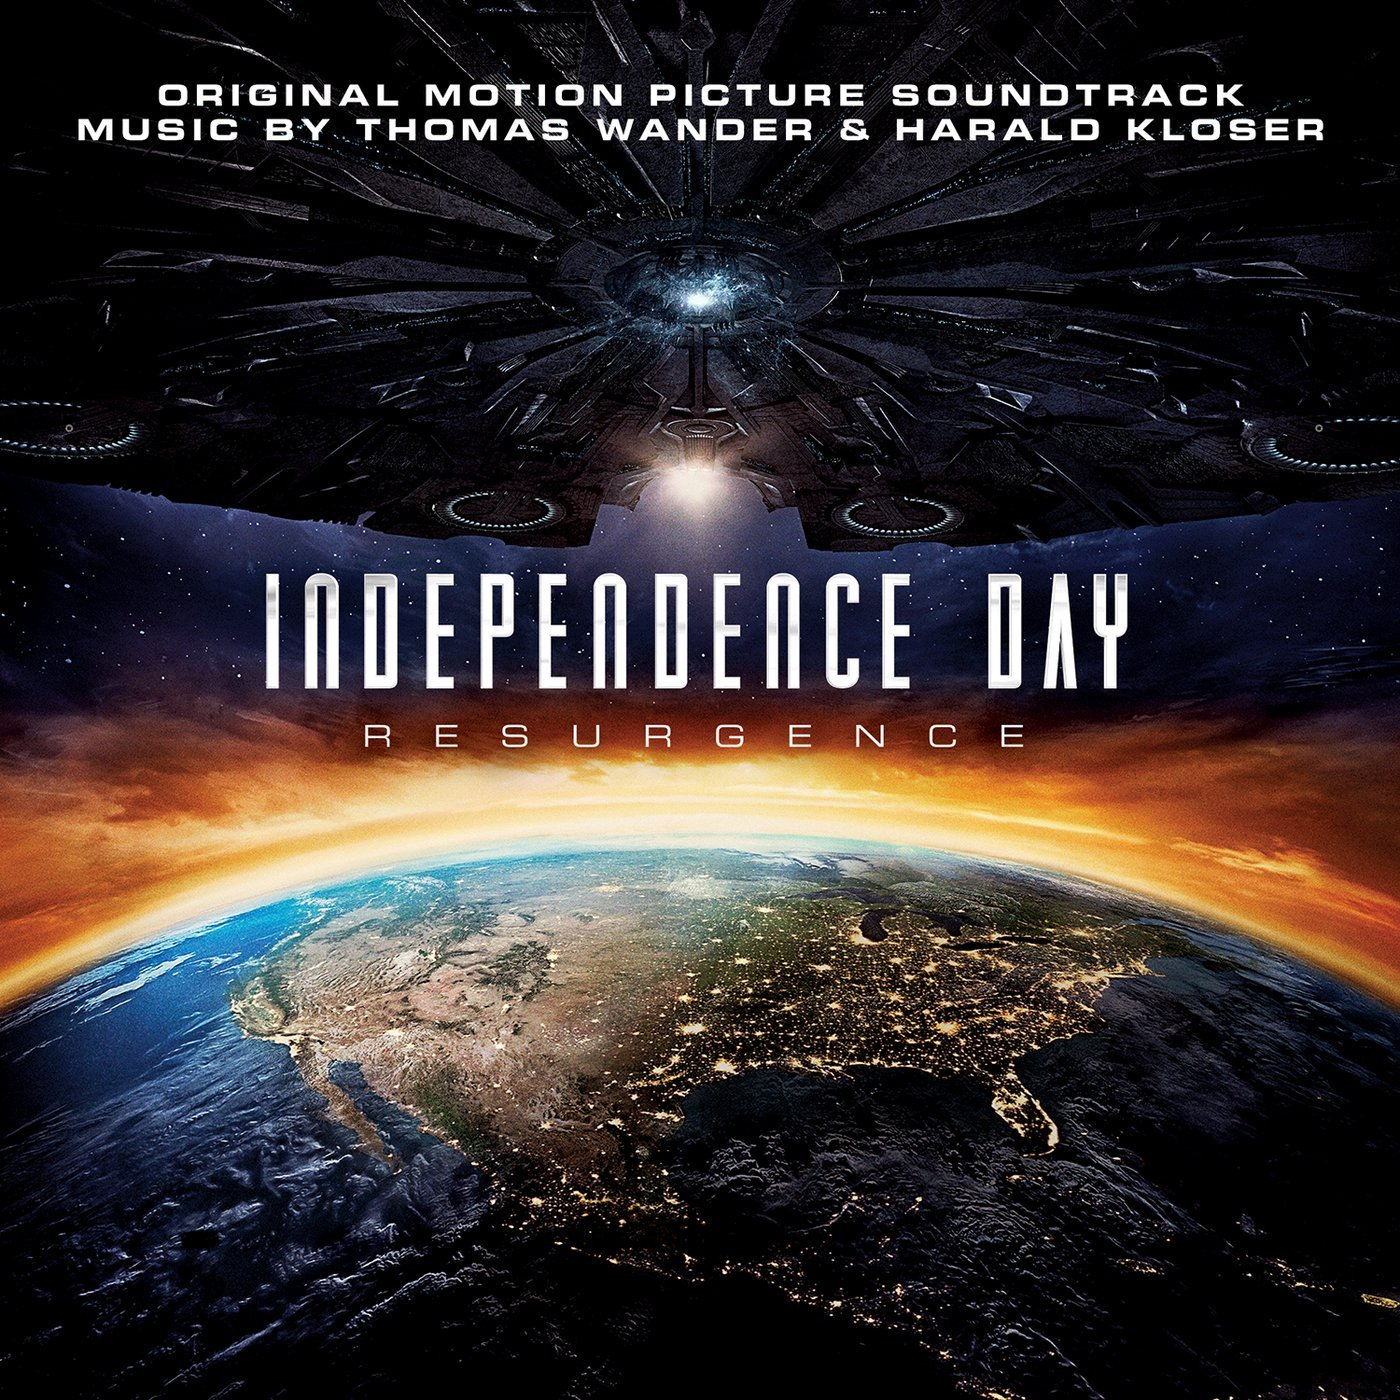 bande originale soundtrack ost score independence day resurgence disney fox